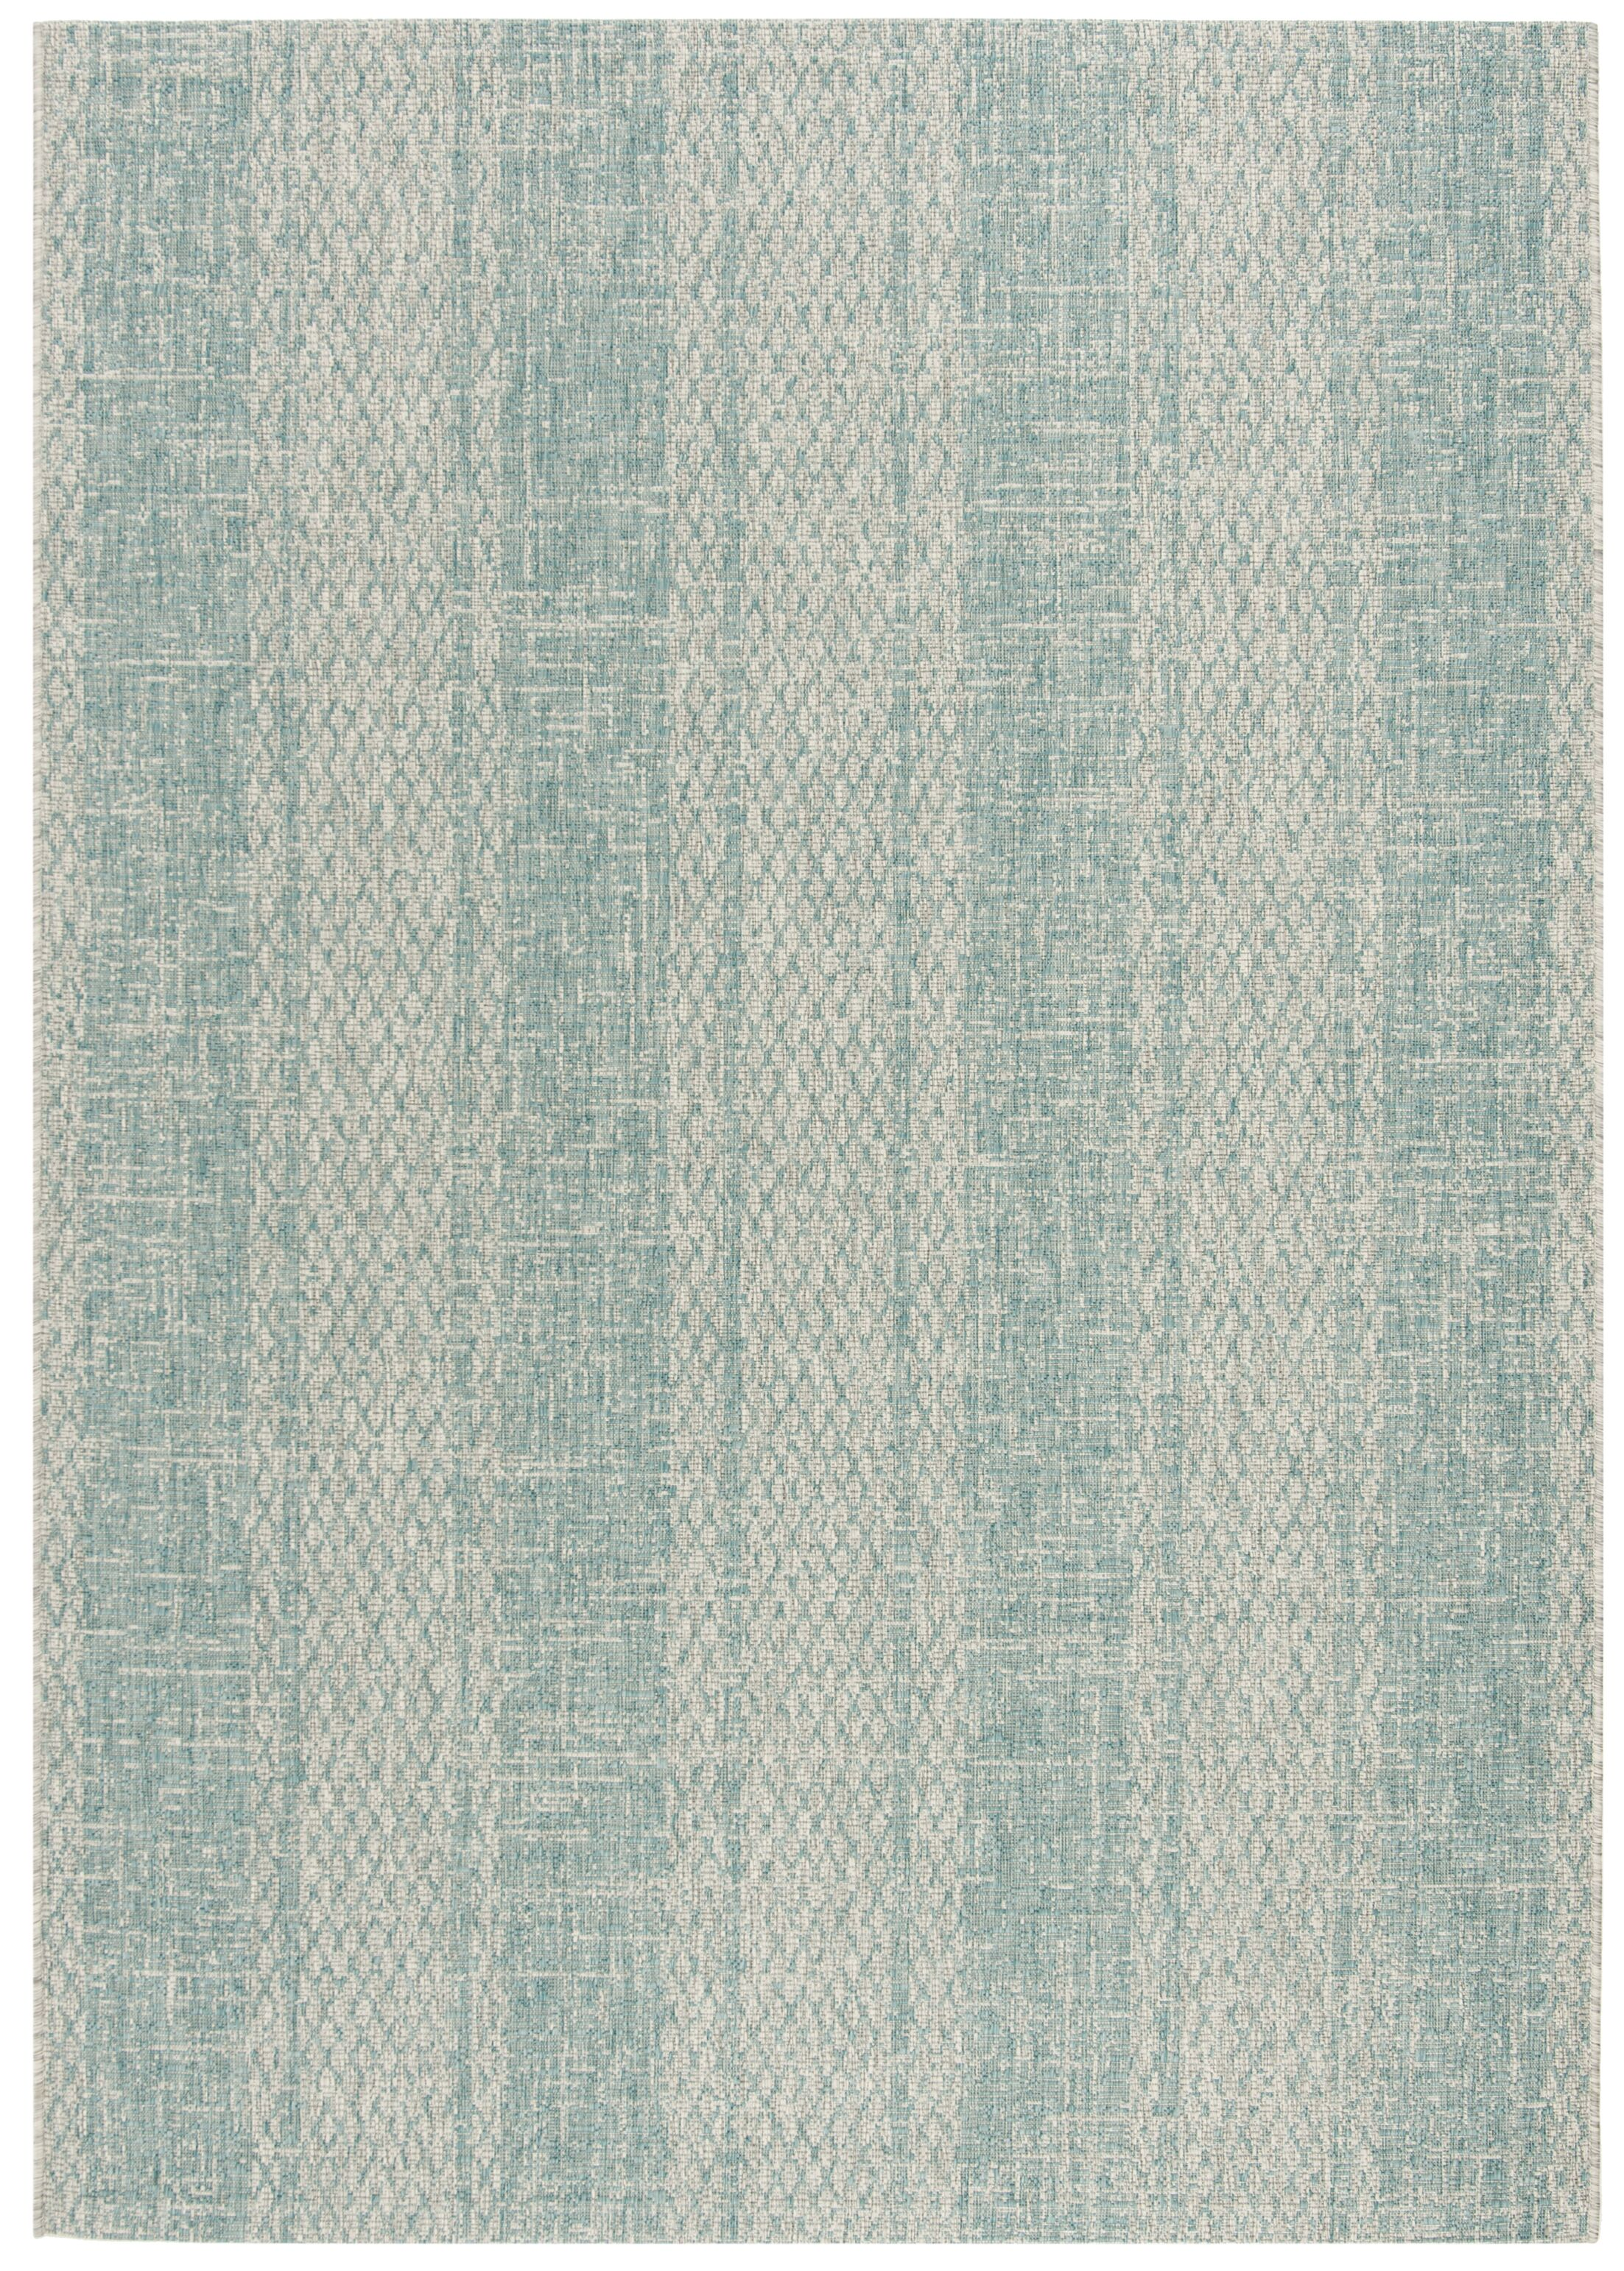 Myers Abstract Gray/Aqua Indoor/Outdoor Area Rug Rug Size: Square 6'7